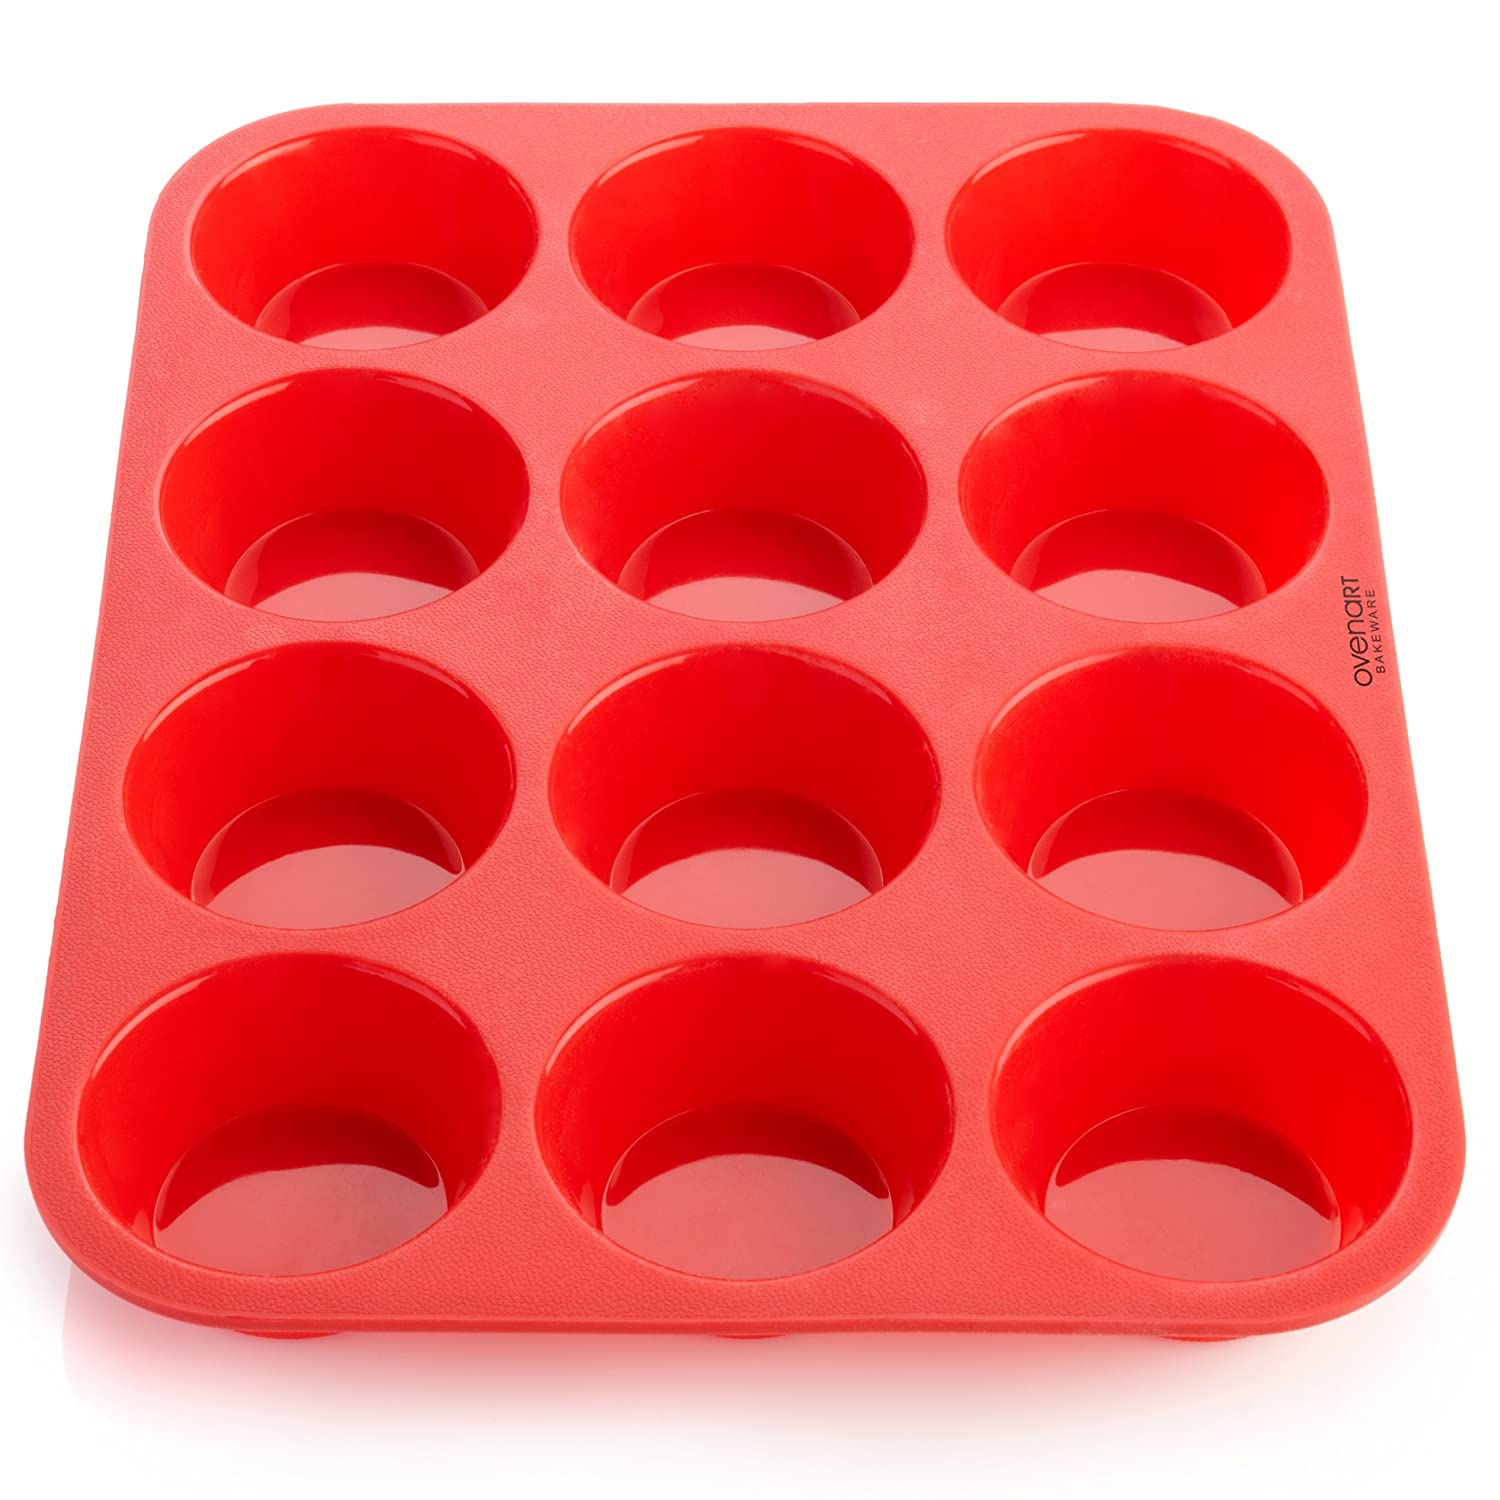 OvenArt Bakeware 12-Cup European LFGB Silicone Muffin Pan, Red